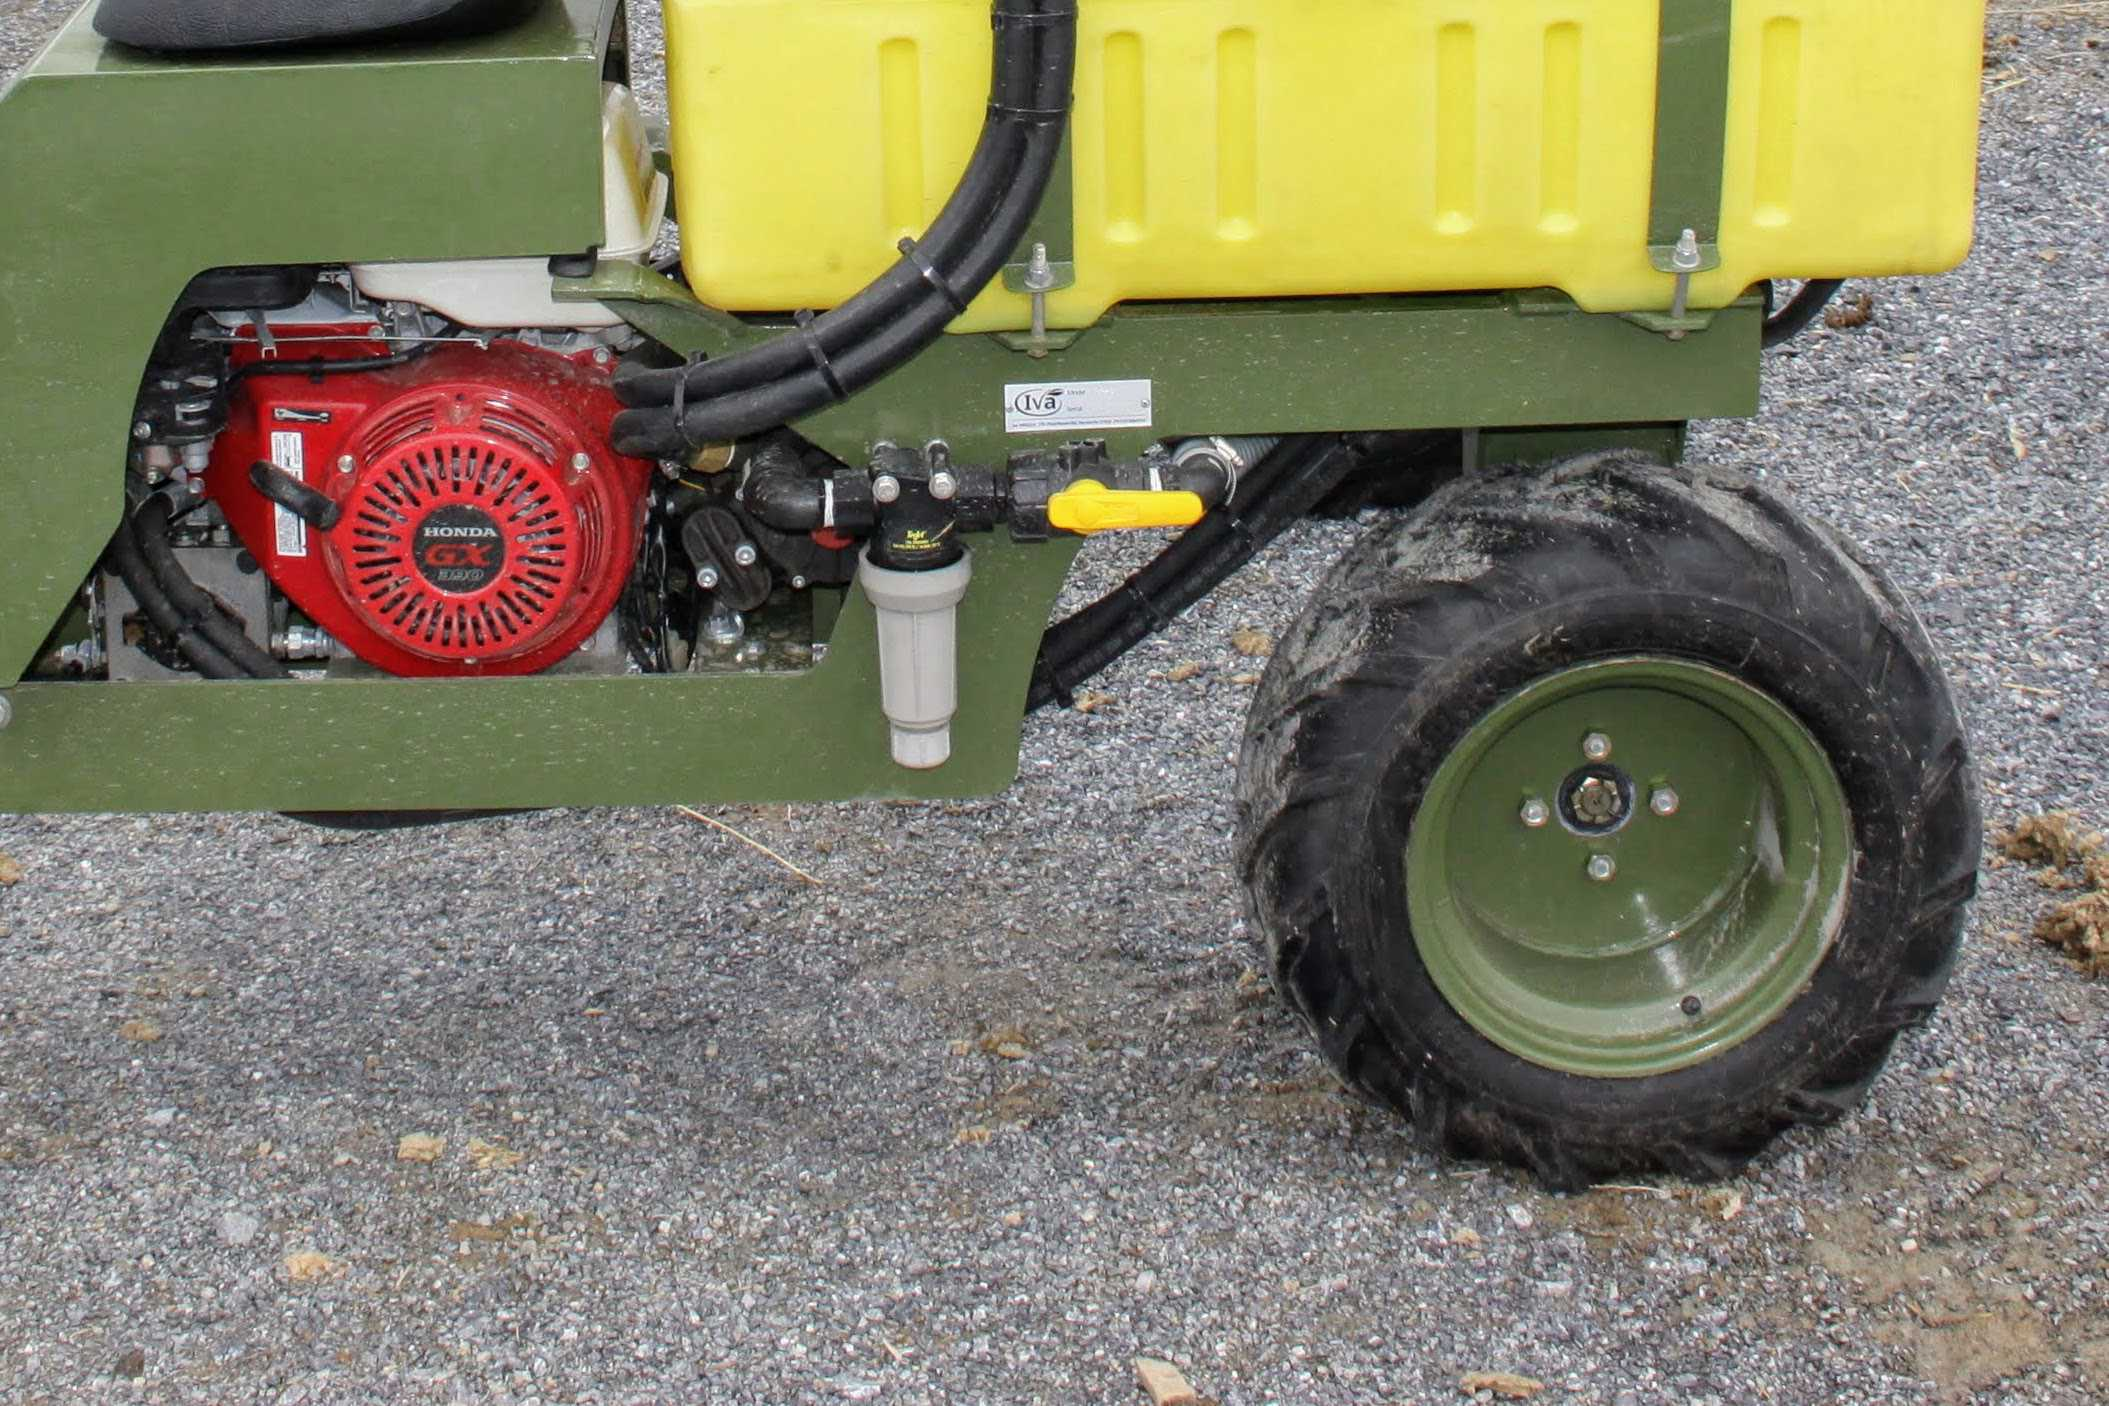 strainer on SP50 hemp sprayer from Iva Mfg